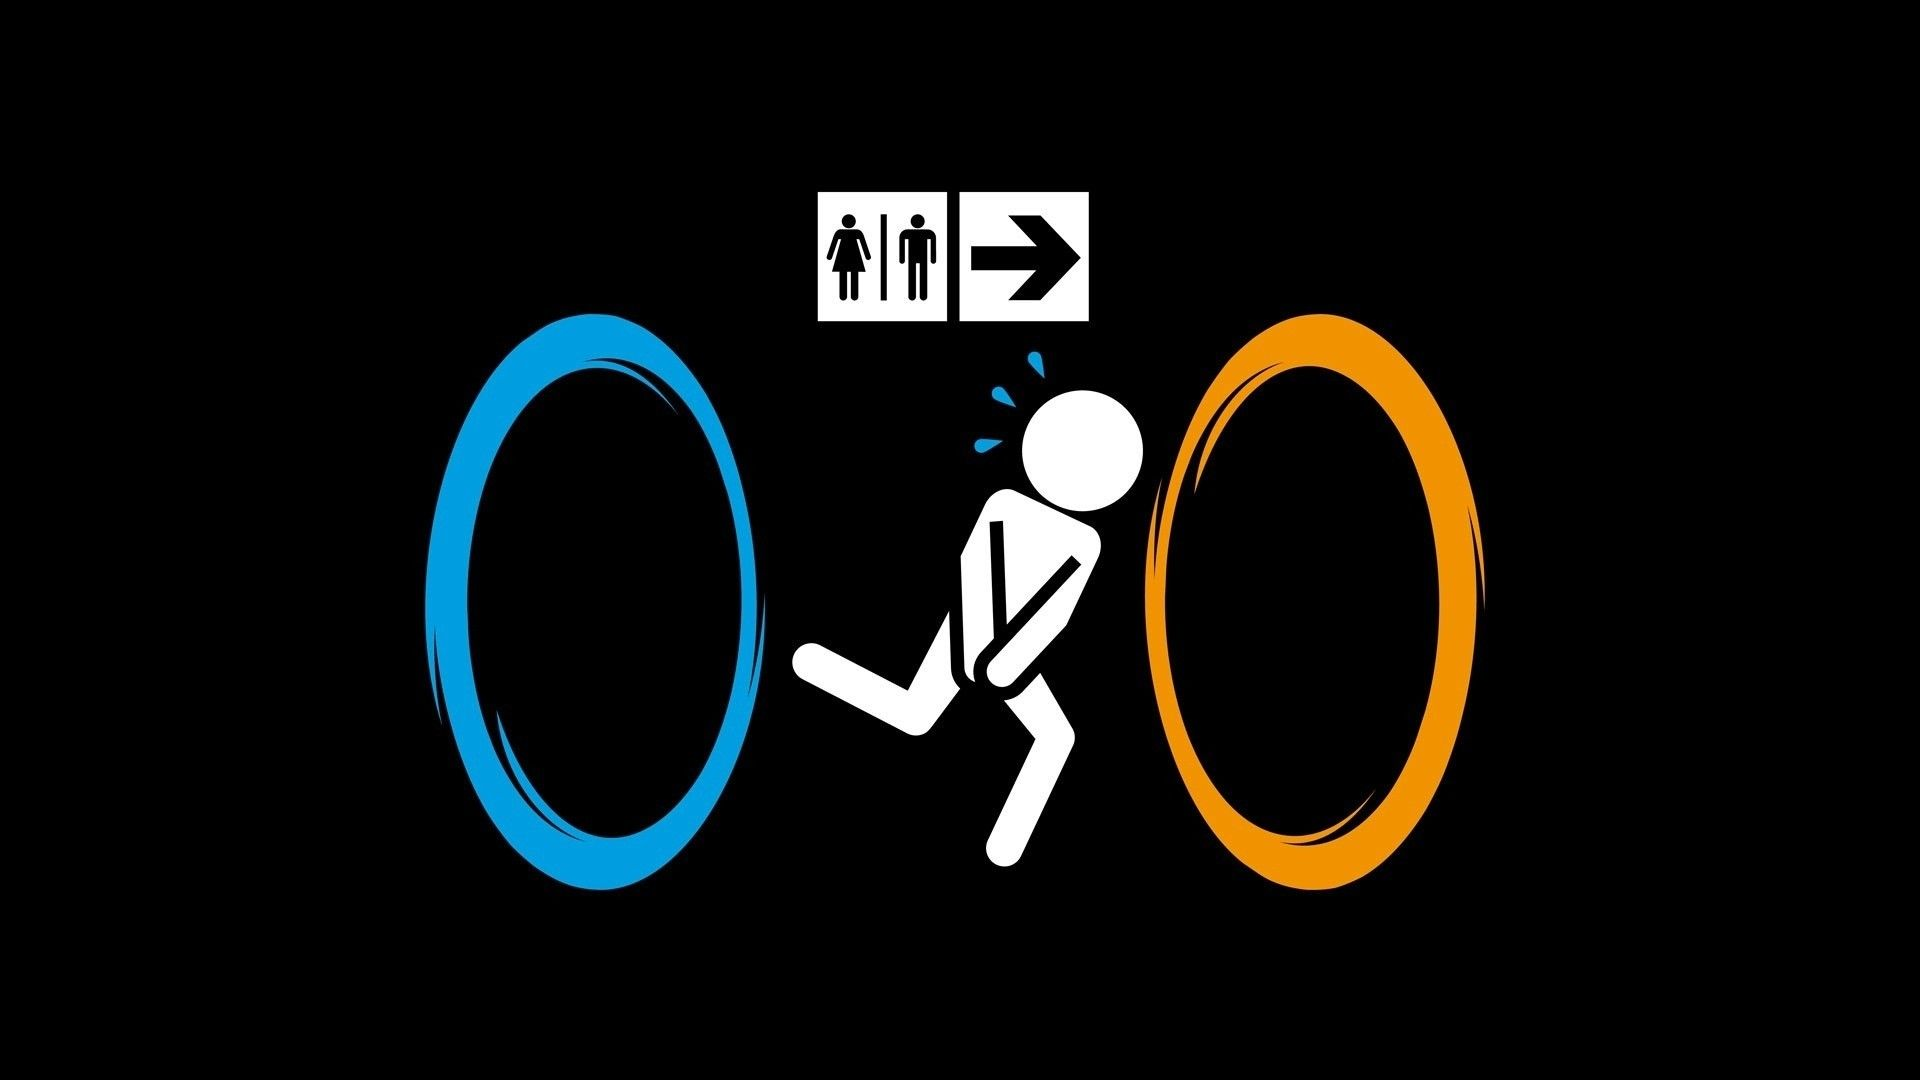 Video Games Portal Humor Signs Bathroom Running Black Background 1920x1080 Wallpaper Funny Wallpaper Funny Pictures Tumblr Funny Wallpapers